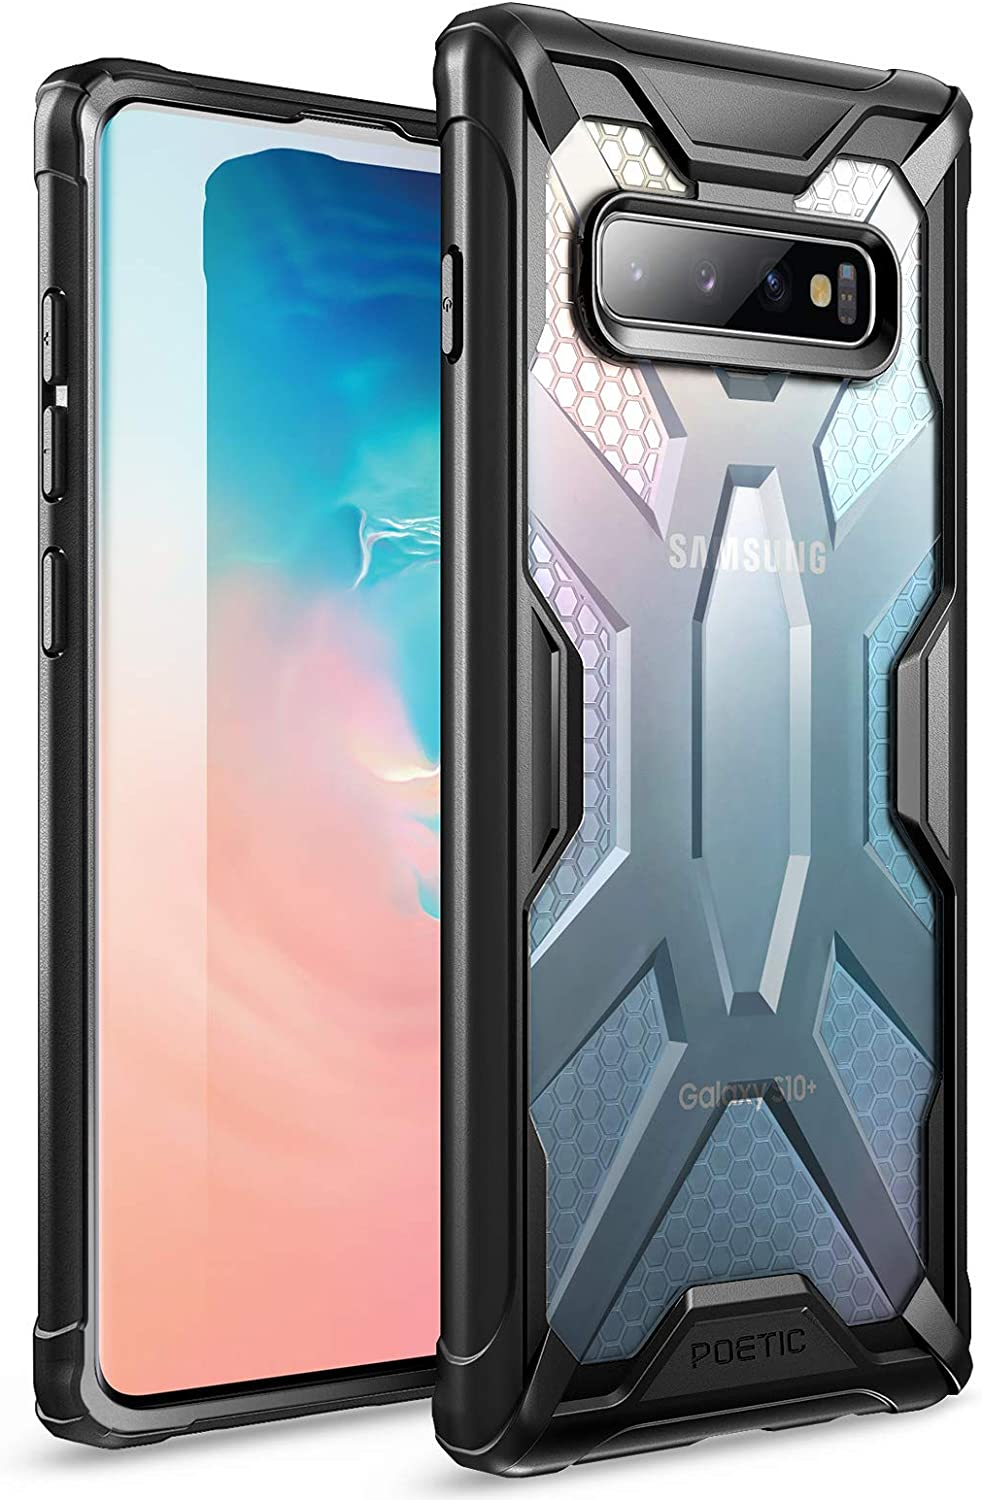 Poetic Galaxy S10 Plus Case, Premium Hybrid Protective Clear Bumper Cover, Rugged Lightweight, Military Grade Drop Tested, Affinity Series, for Samsung Galaxy S10 Plus 6.4 Inch (2019), Frost/Black